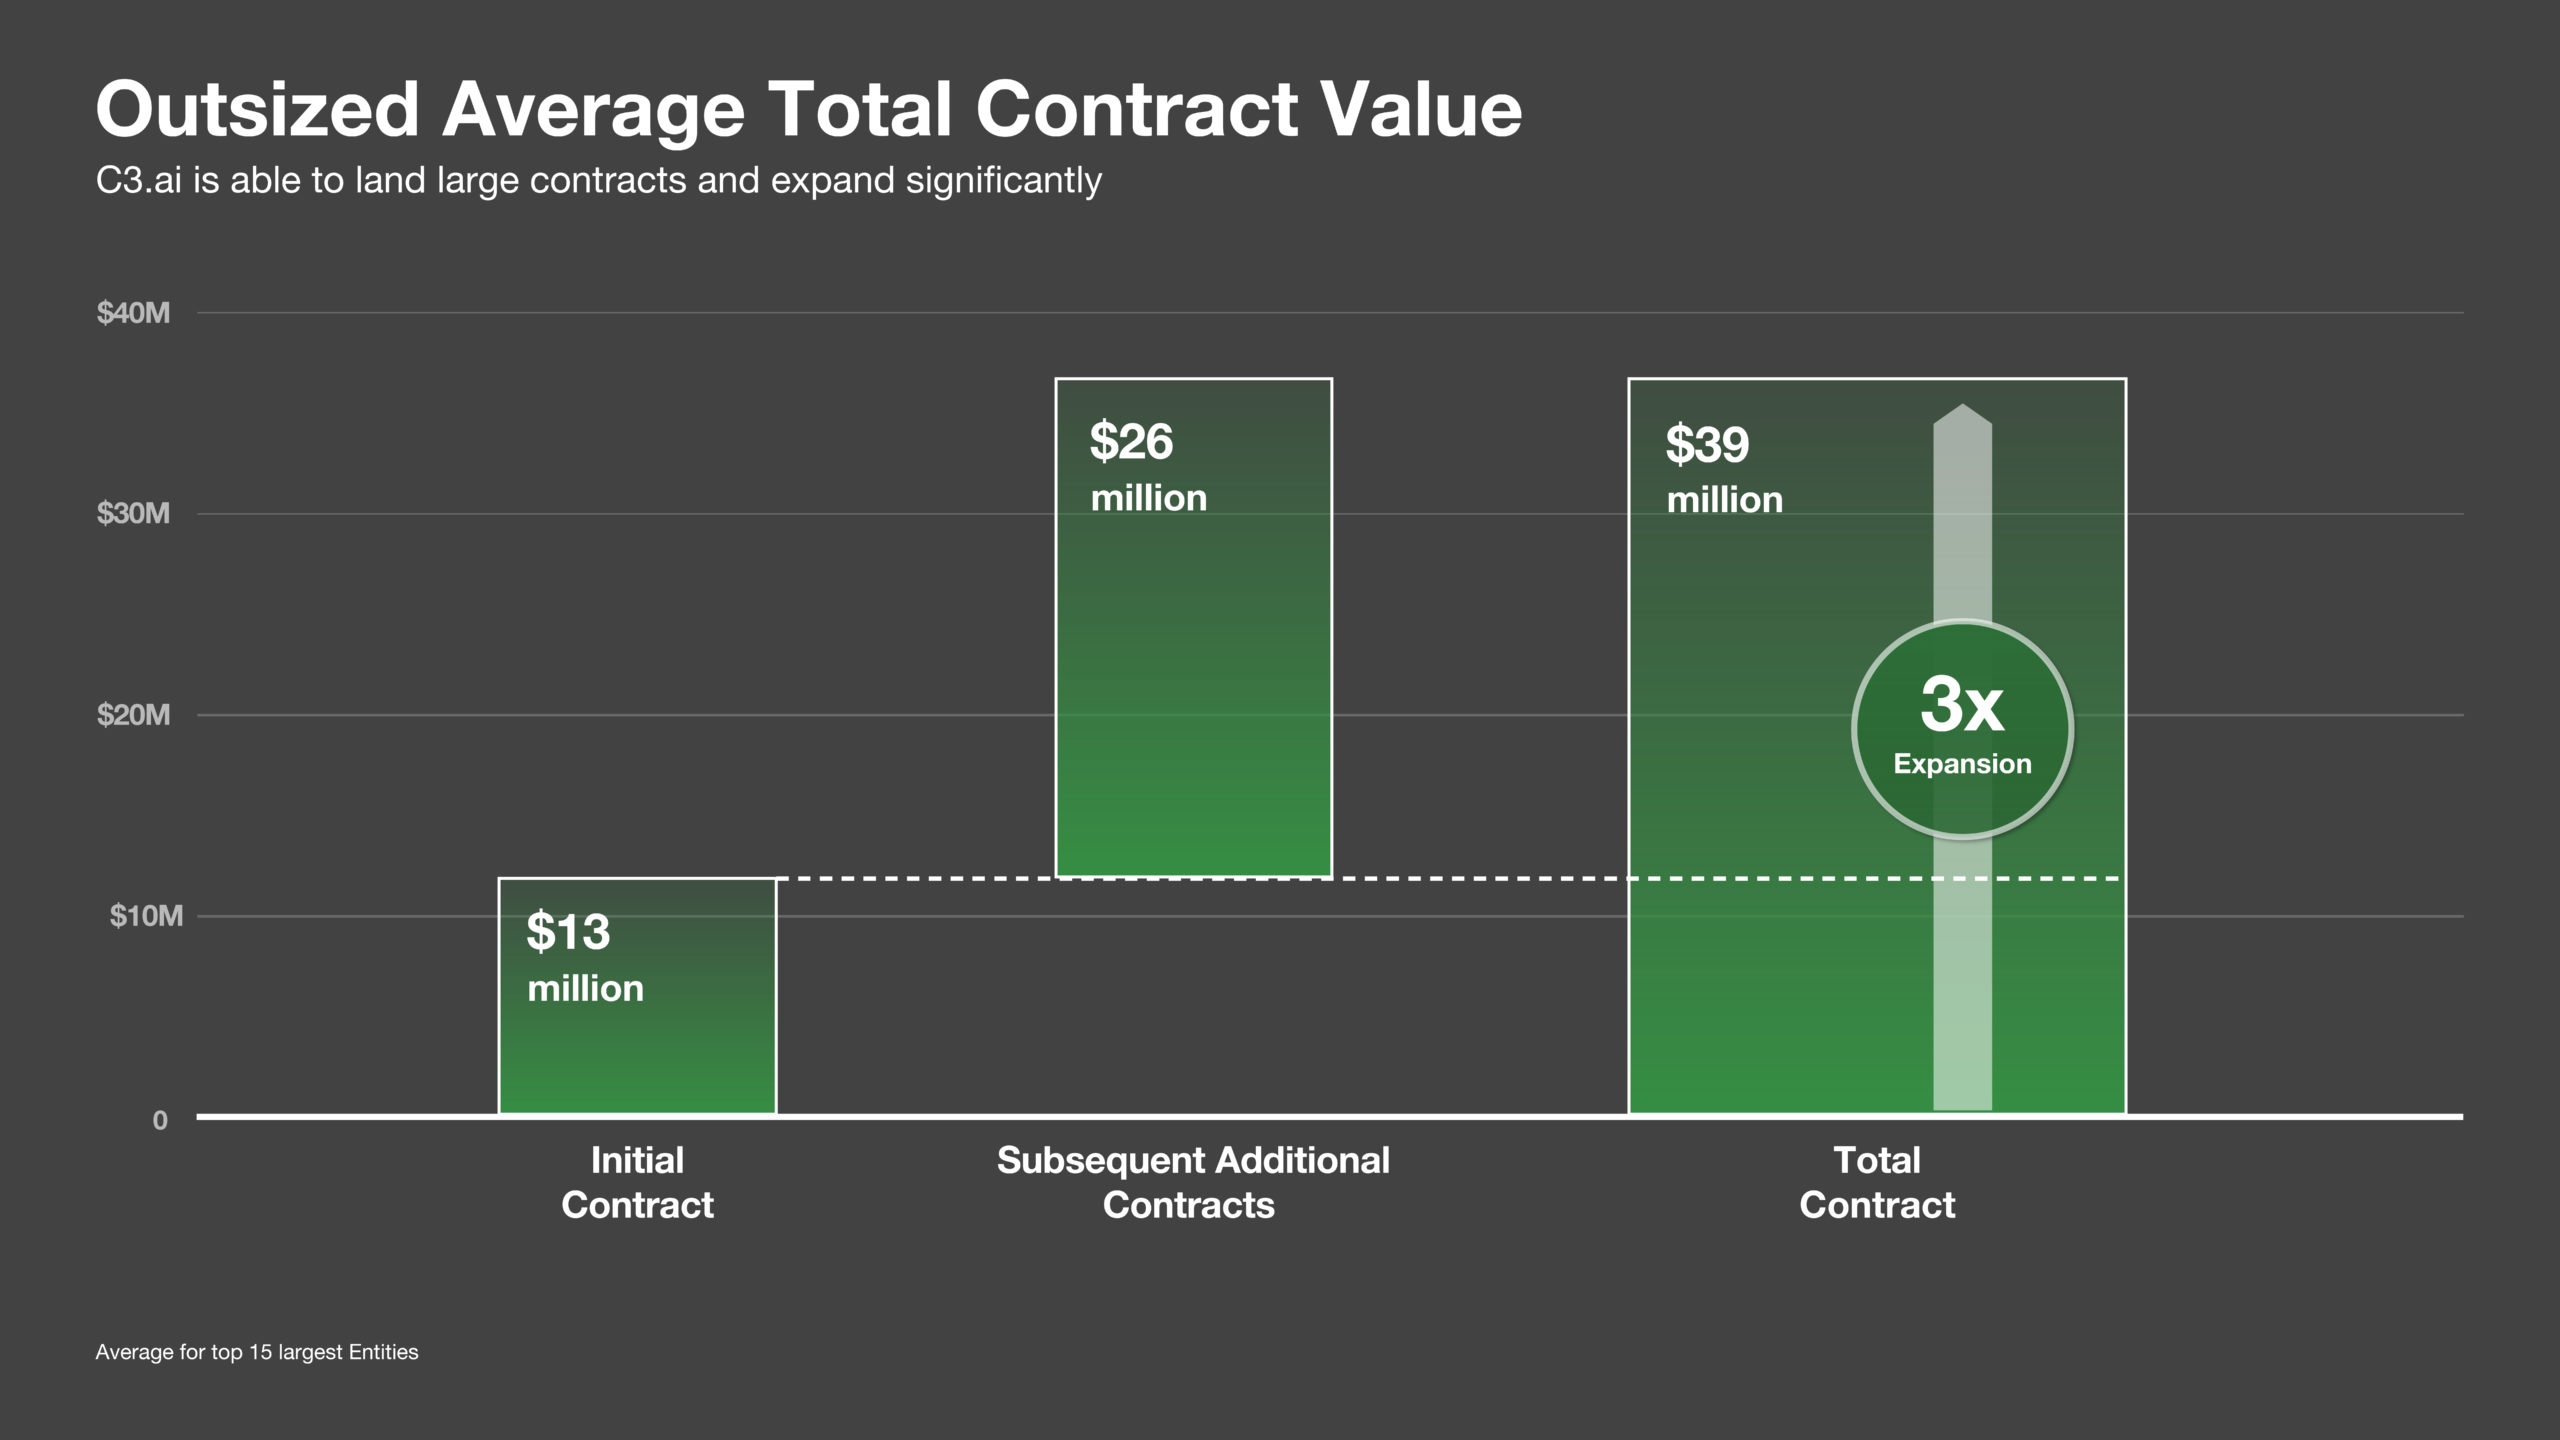 Outsized Average Total Contract Value